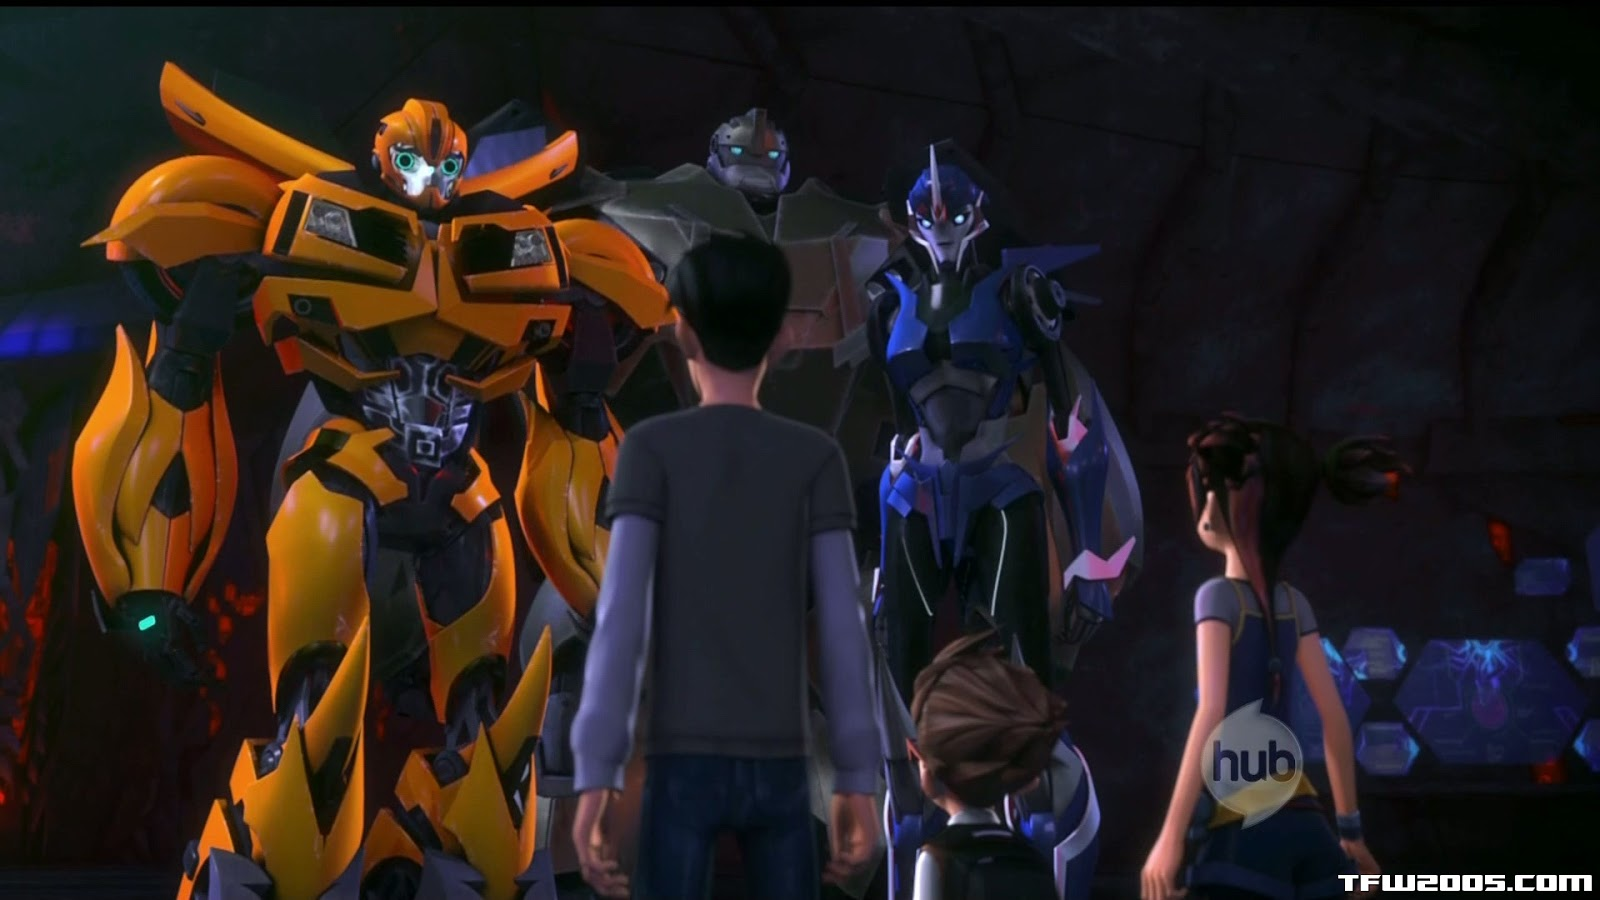 Transformers Prime Arcee And Jack Fanfiction Romance Shadowcon reviews: transformers prime season 1 episode 4: �darkness rising,